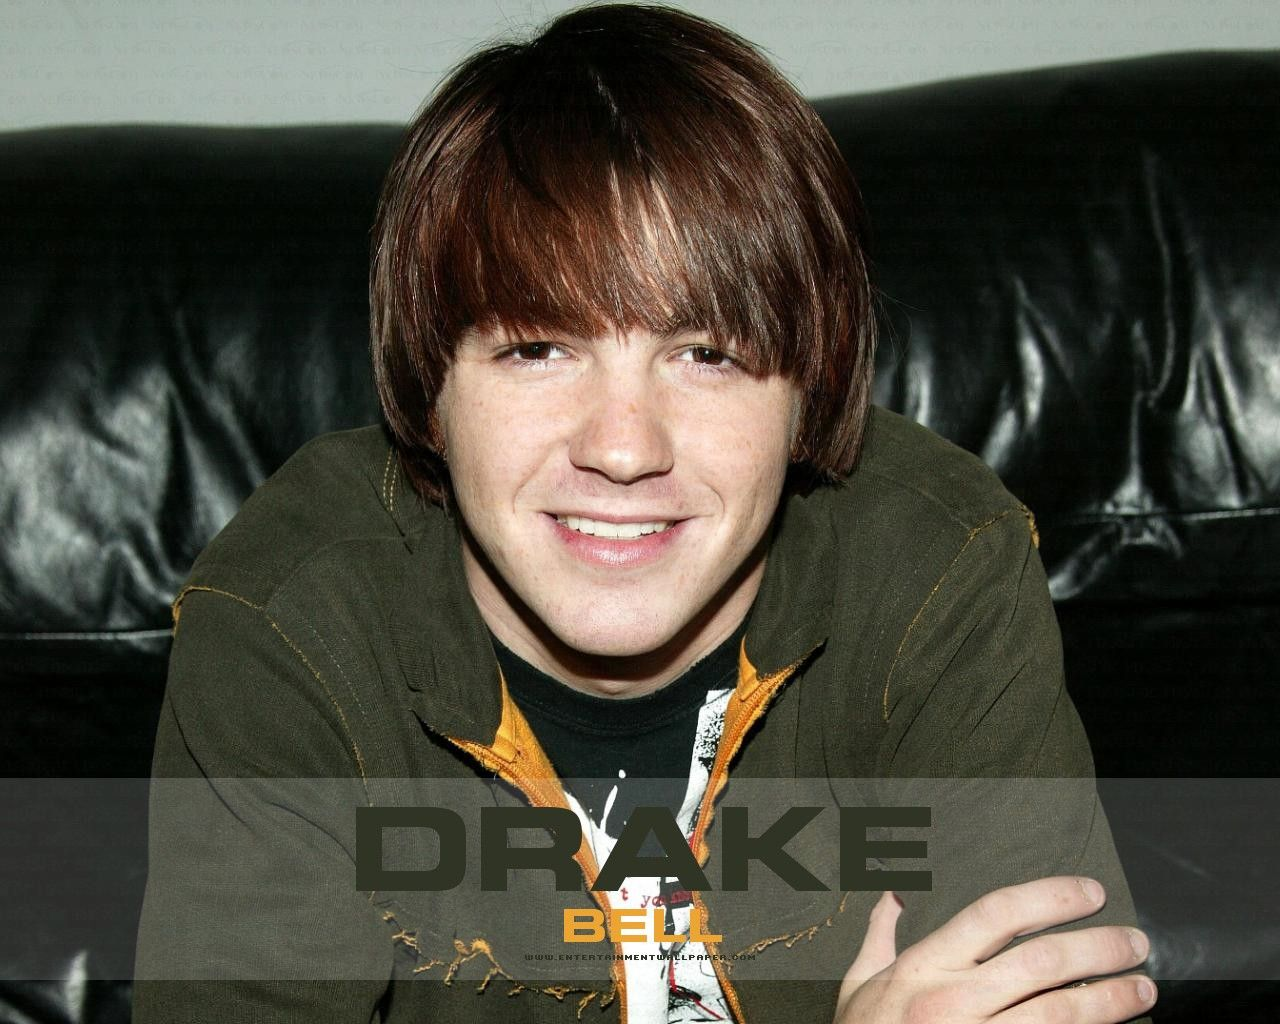 Drake bell wallpapers daily inspiration art photos pictures and drake bell wallpapers daily inspiration art photos pictures and wallpapers singers musicians pinterest voltagebd Image collections